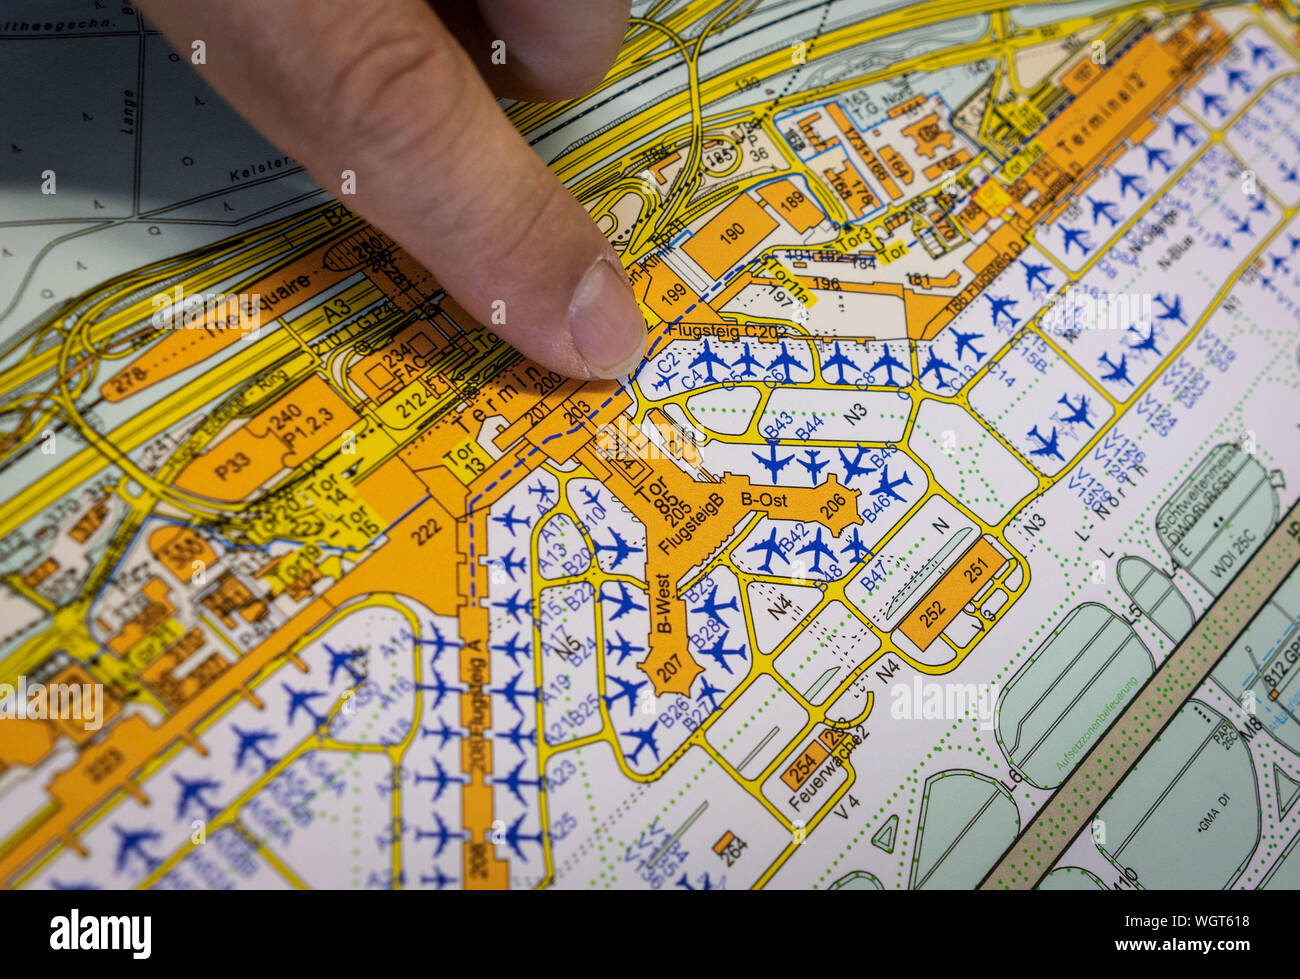 21 August 2019 Hessen Frankfurt Main Martin Bulow Head Of Traffic Safety At Frankfurt Airport Explains On A Plan One Of The Difficult Spots For Vehicles On The Apron Driving On The Apron